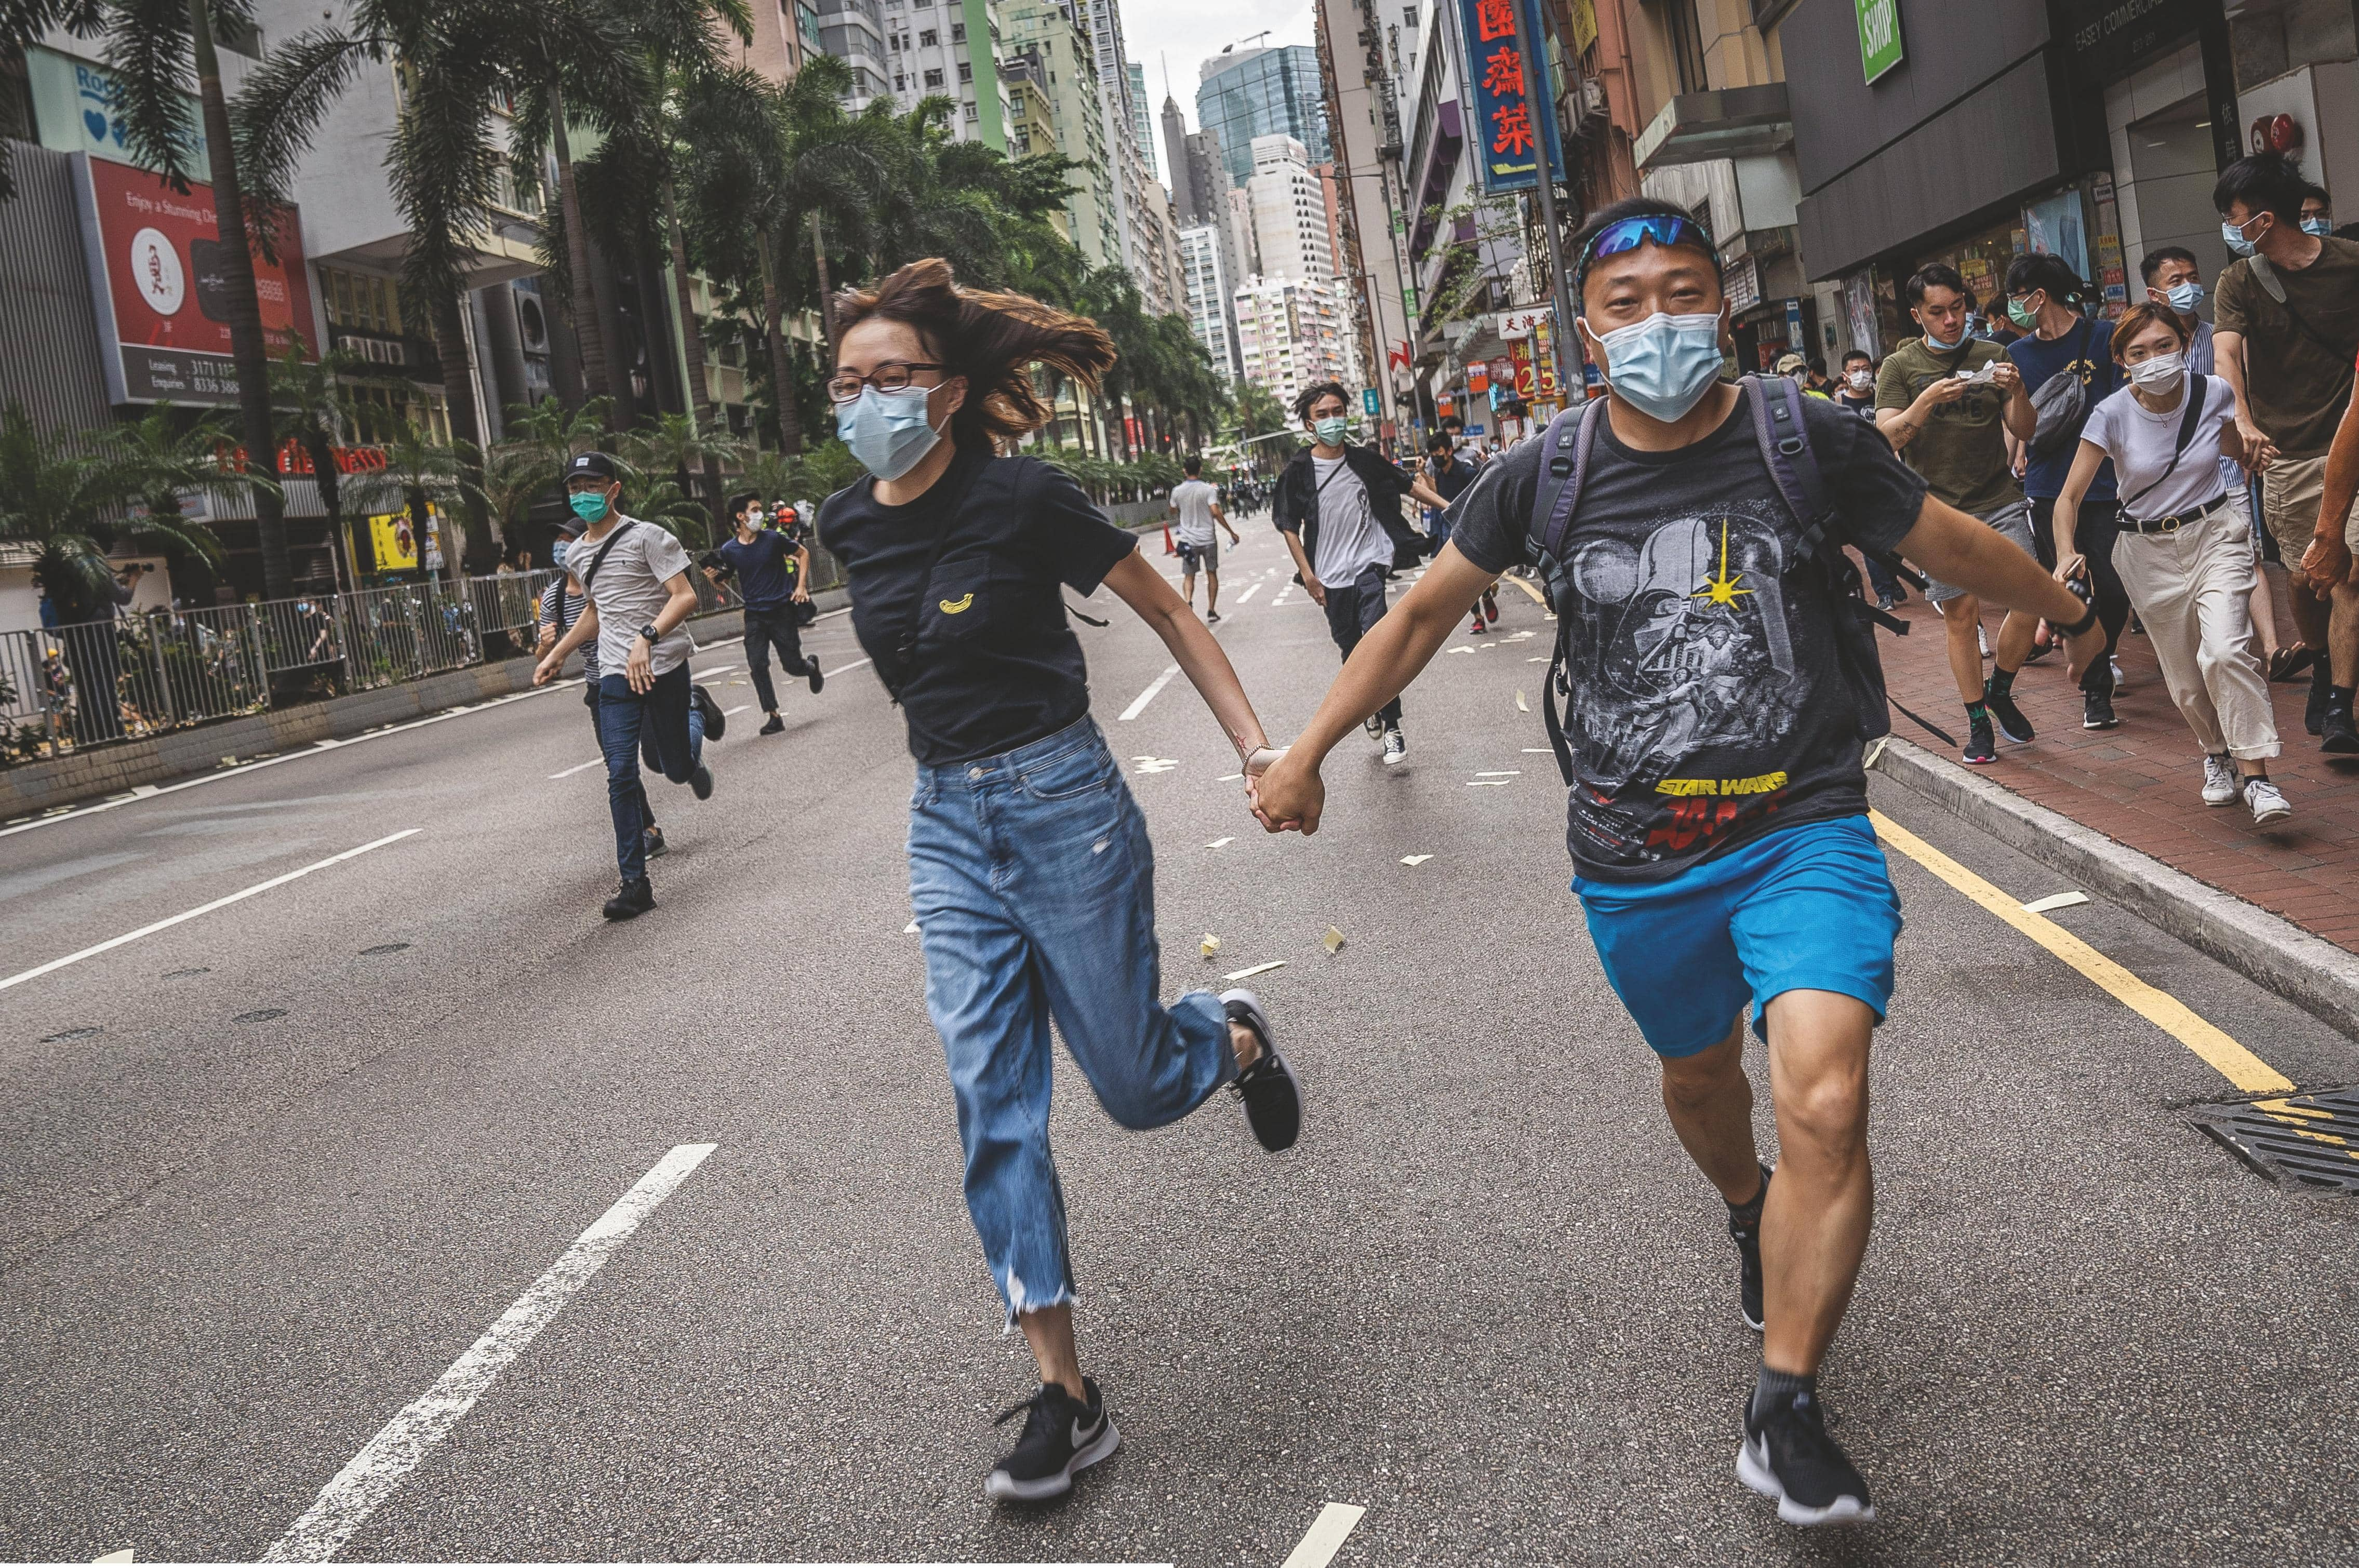 WHY HONG KONG'S PROTESTS TURNED VIOLENT